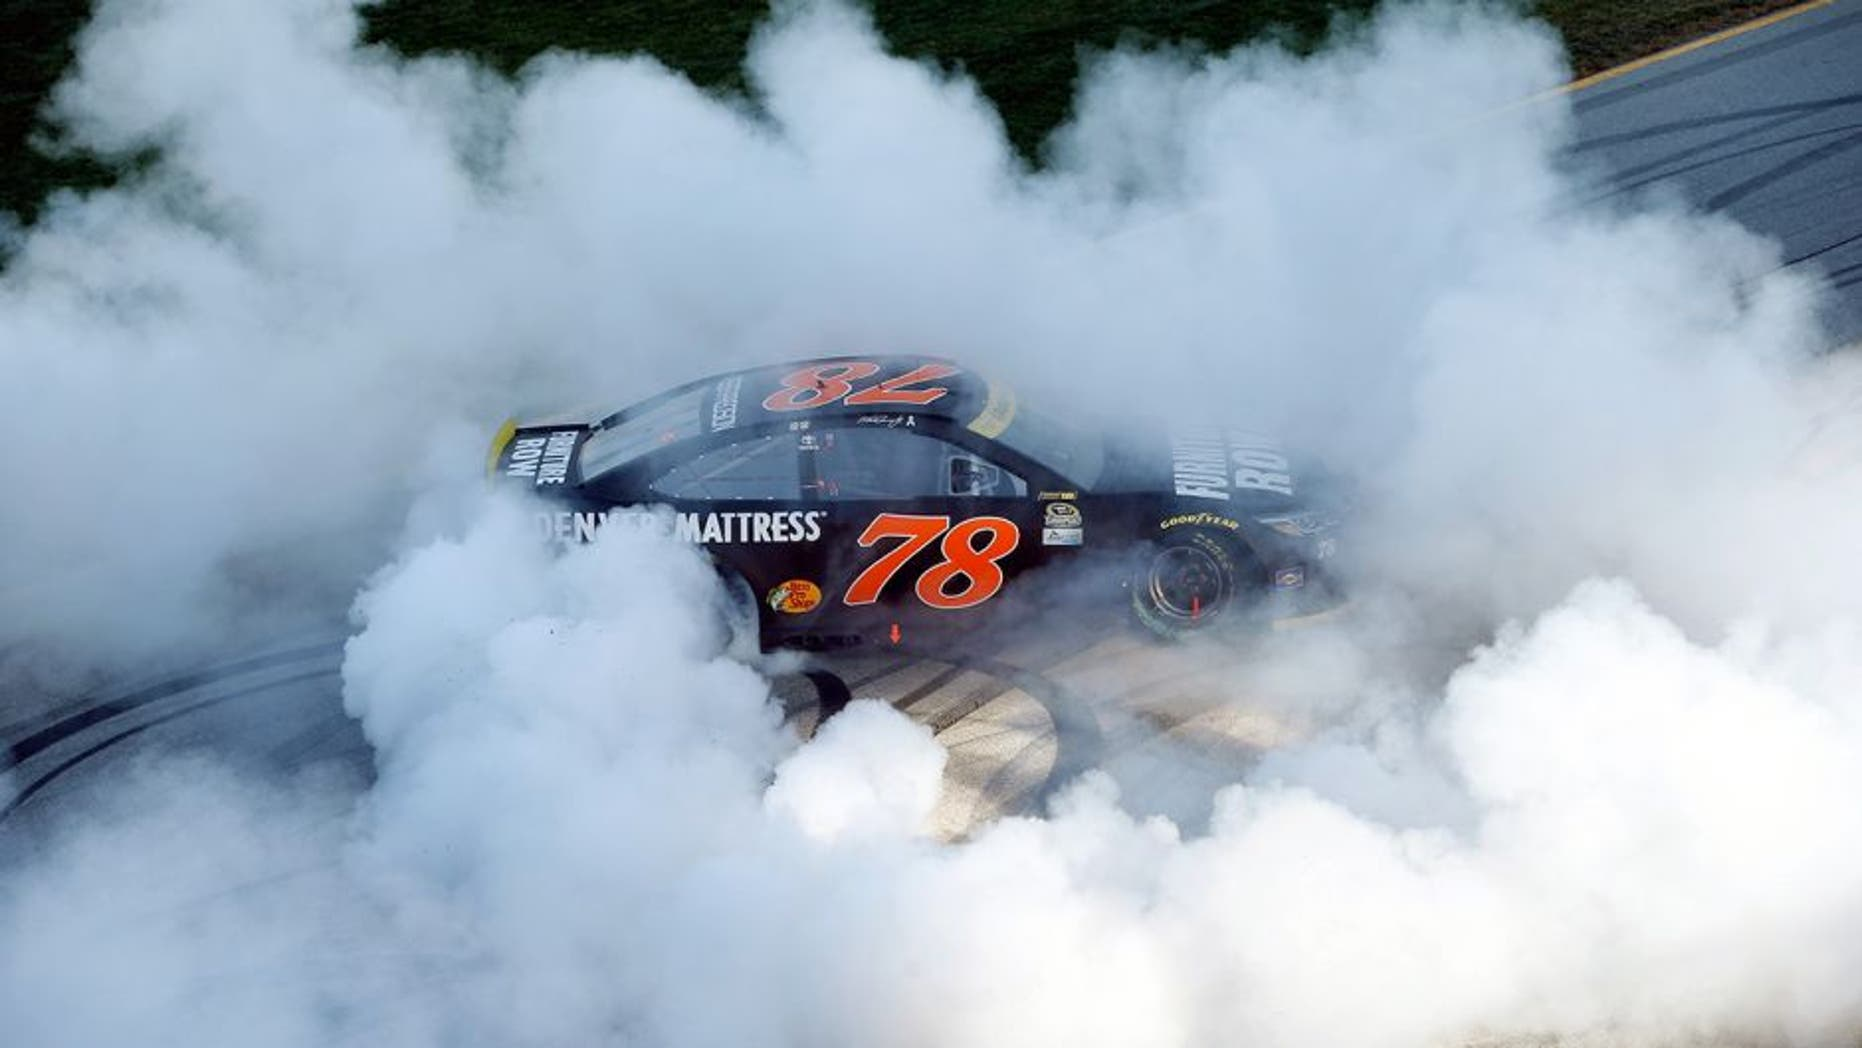 JOLIET, IL - SEPTEMBER 18: Martin Truex Jr, driver of the #78 Furniture Row/Denver Mattress Toyota, celebrates with a burnout after winning the NASCAR Sprint Cup Series Teenage Mutant Ninja Turtles 400 at Chicagoland Speedway on September 18, 2016 in Joliet, Illinois. (Photo by Brian Lawdermilk/NASCAR via Getty Images)